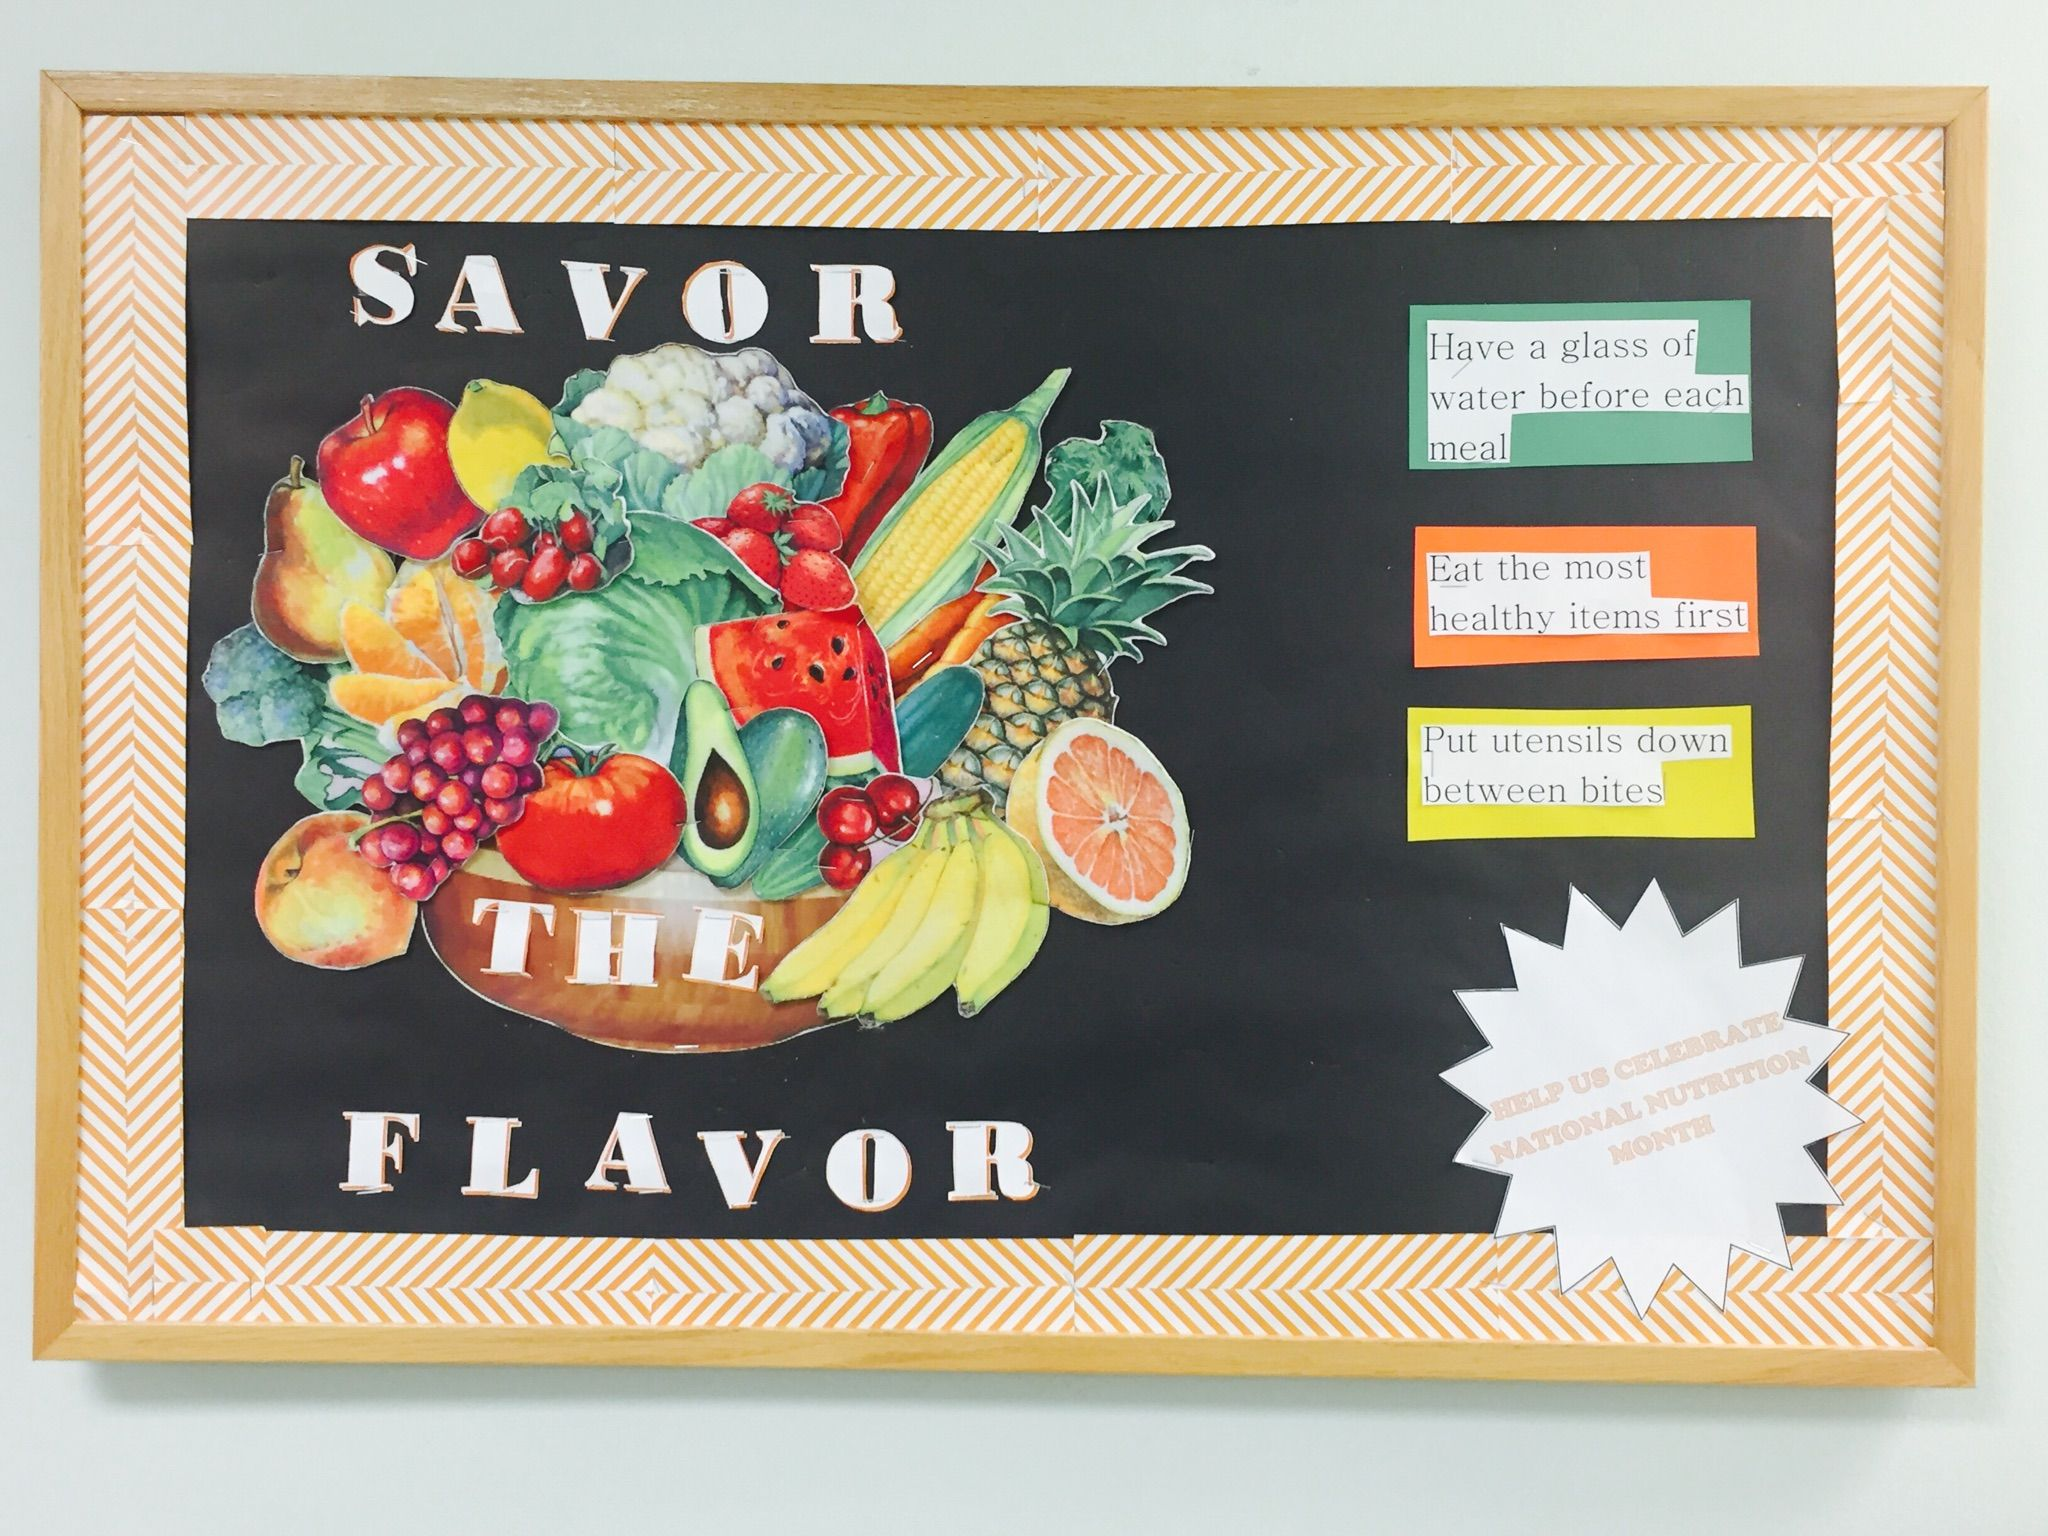 Go green vegetable bulletin board idea myclassroomideas com - National Nutrition Month 2016 Griffin Ga Savortheflavor National Nutrition Month 2016bulletin Boardsgriffinsschool Ideas